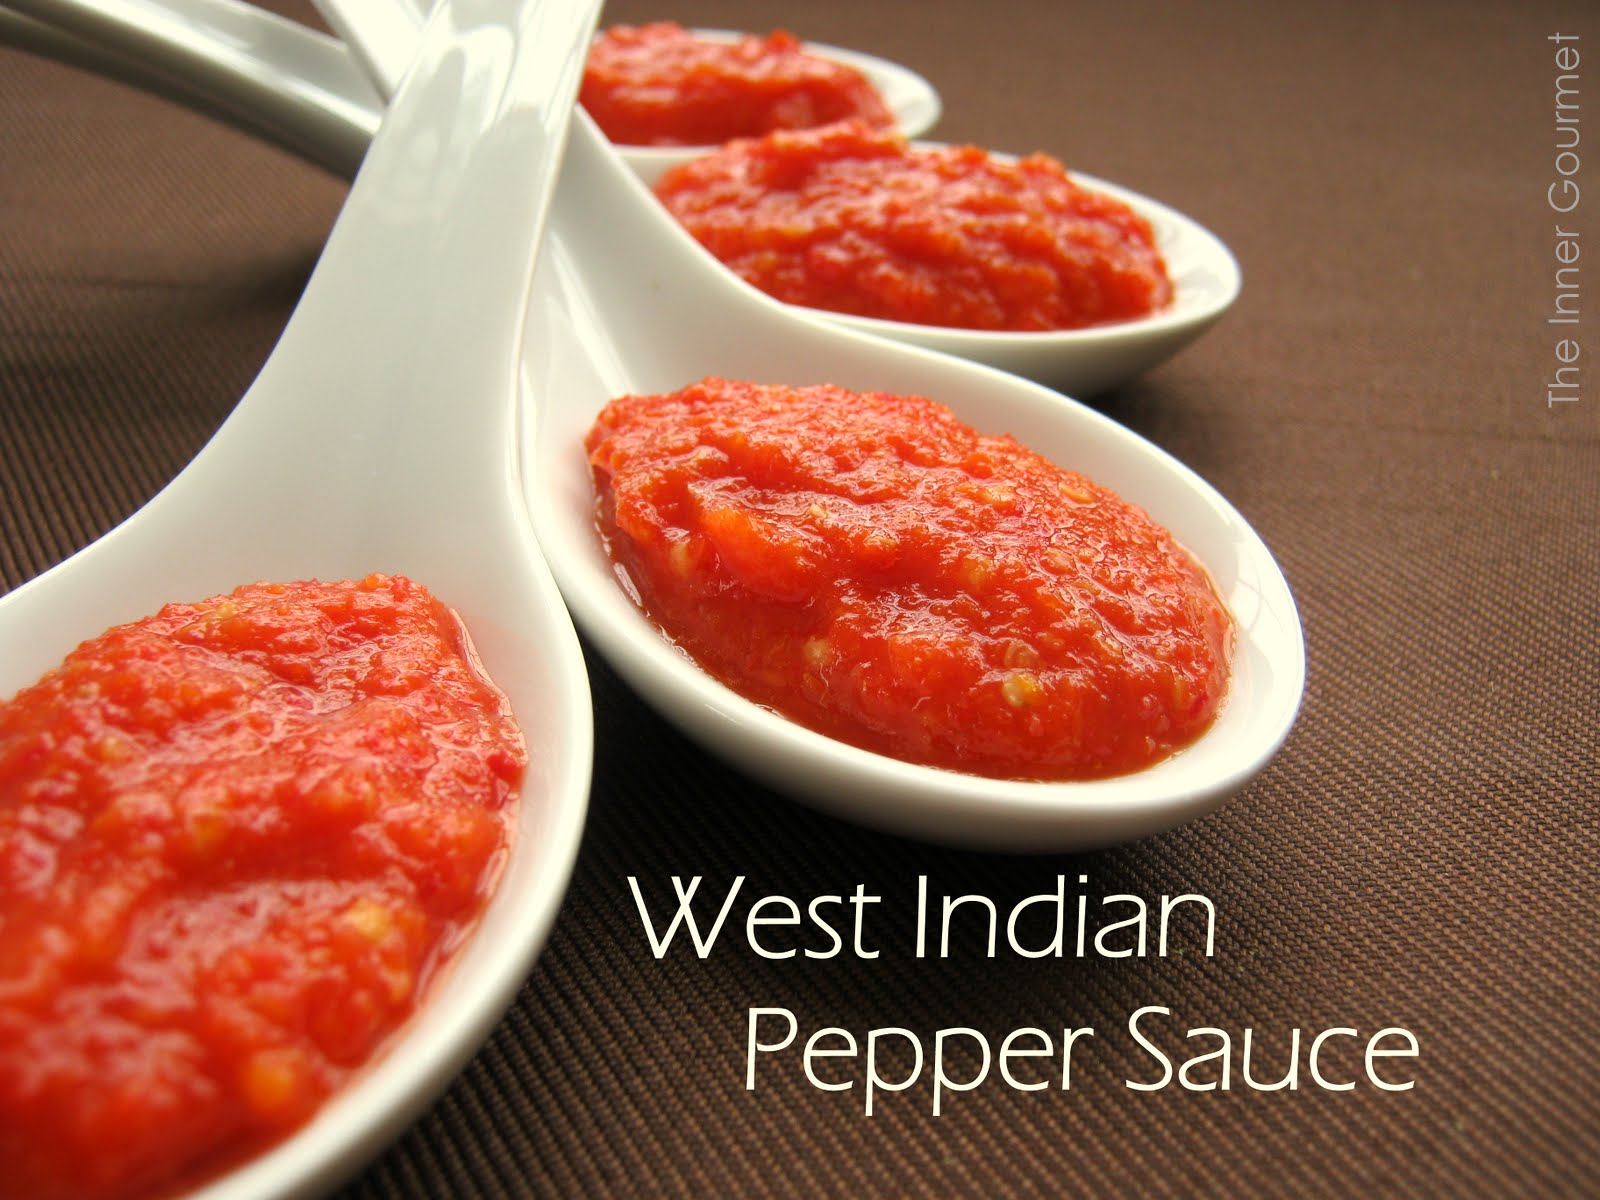 Hot pepper sauce recipe